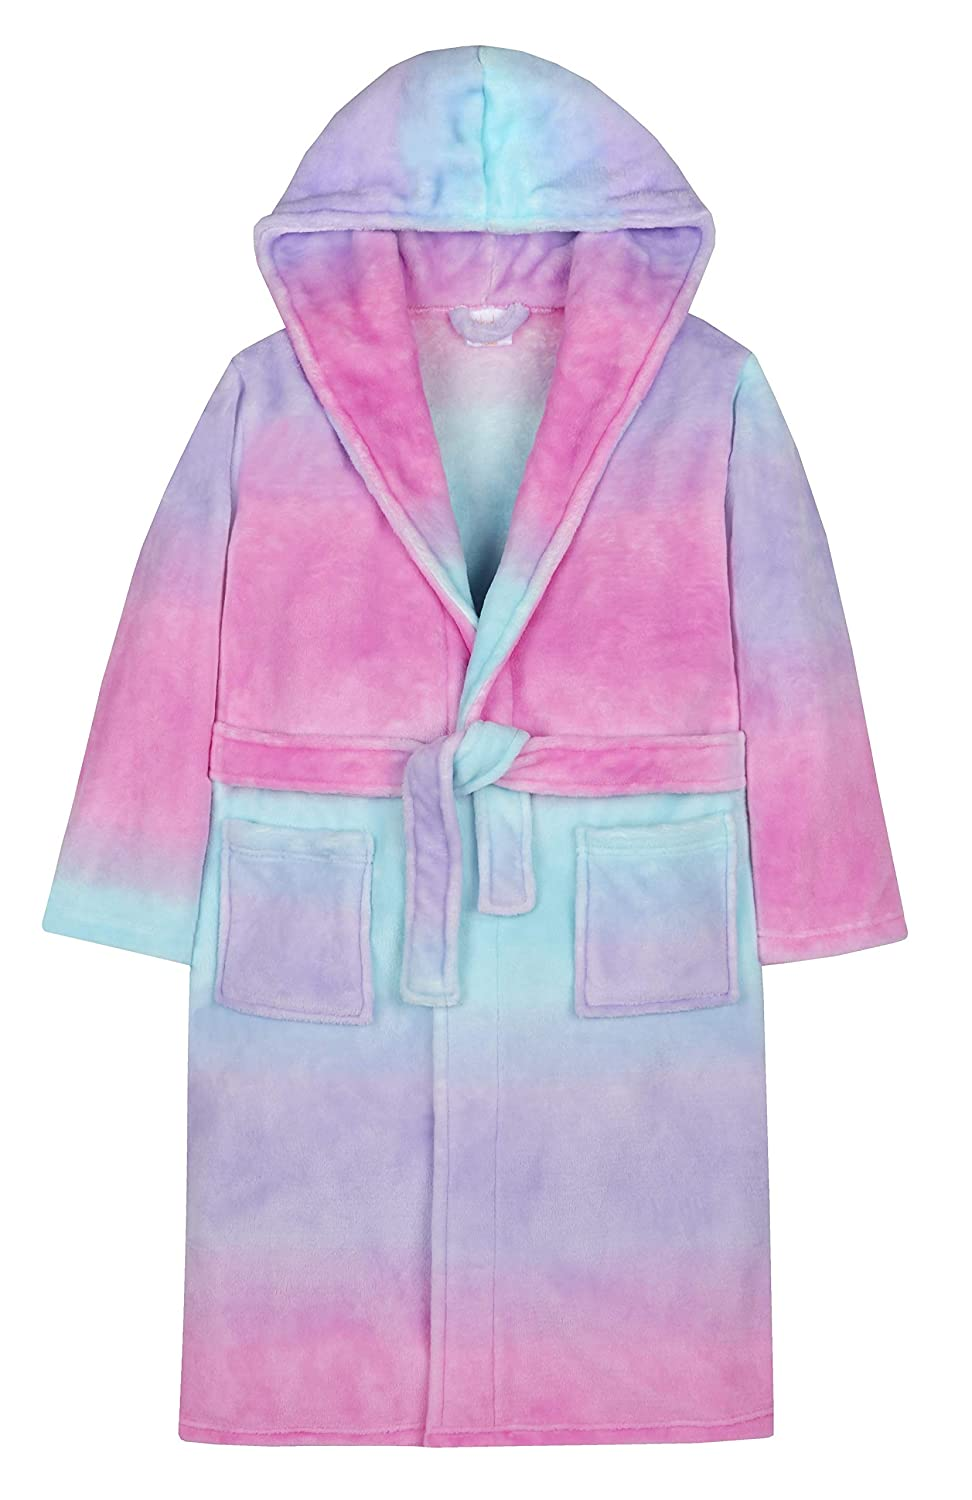 4 KIDZ Girls Rainbow Gradient Dressing Gown